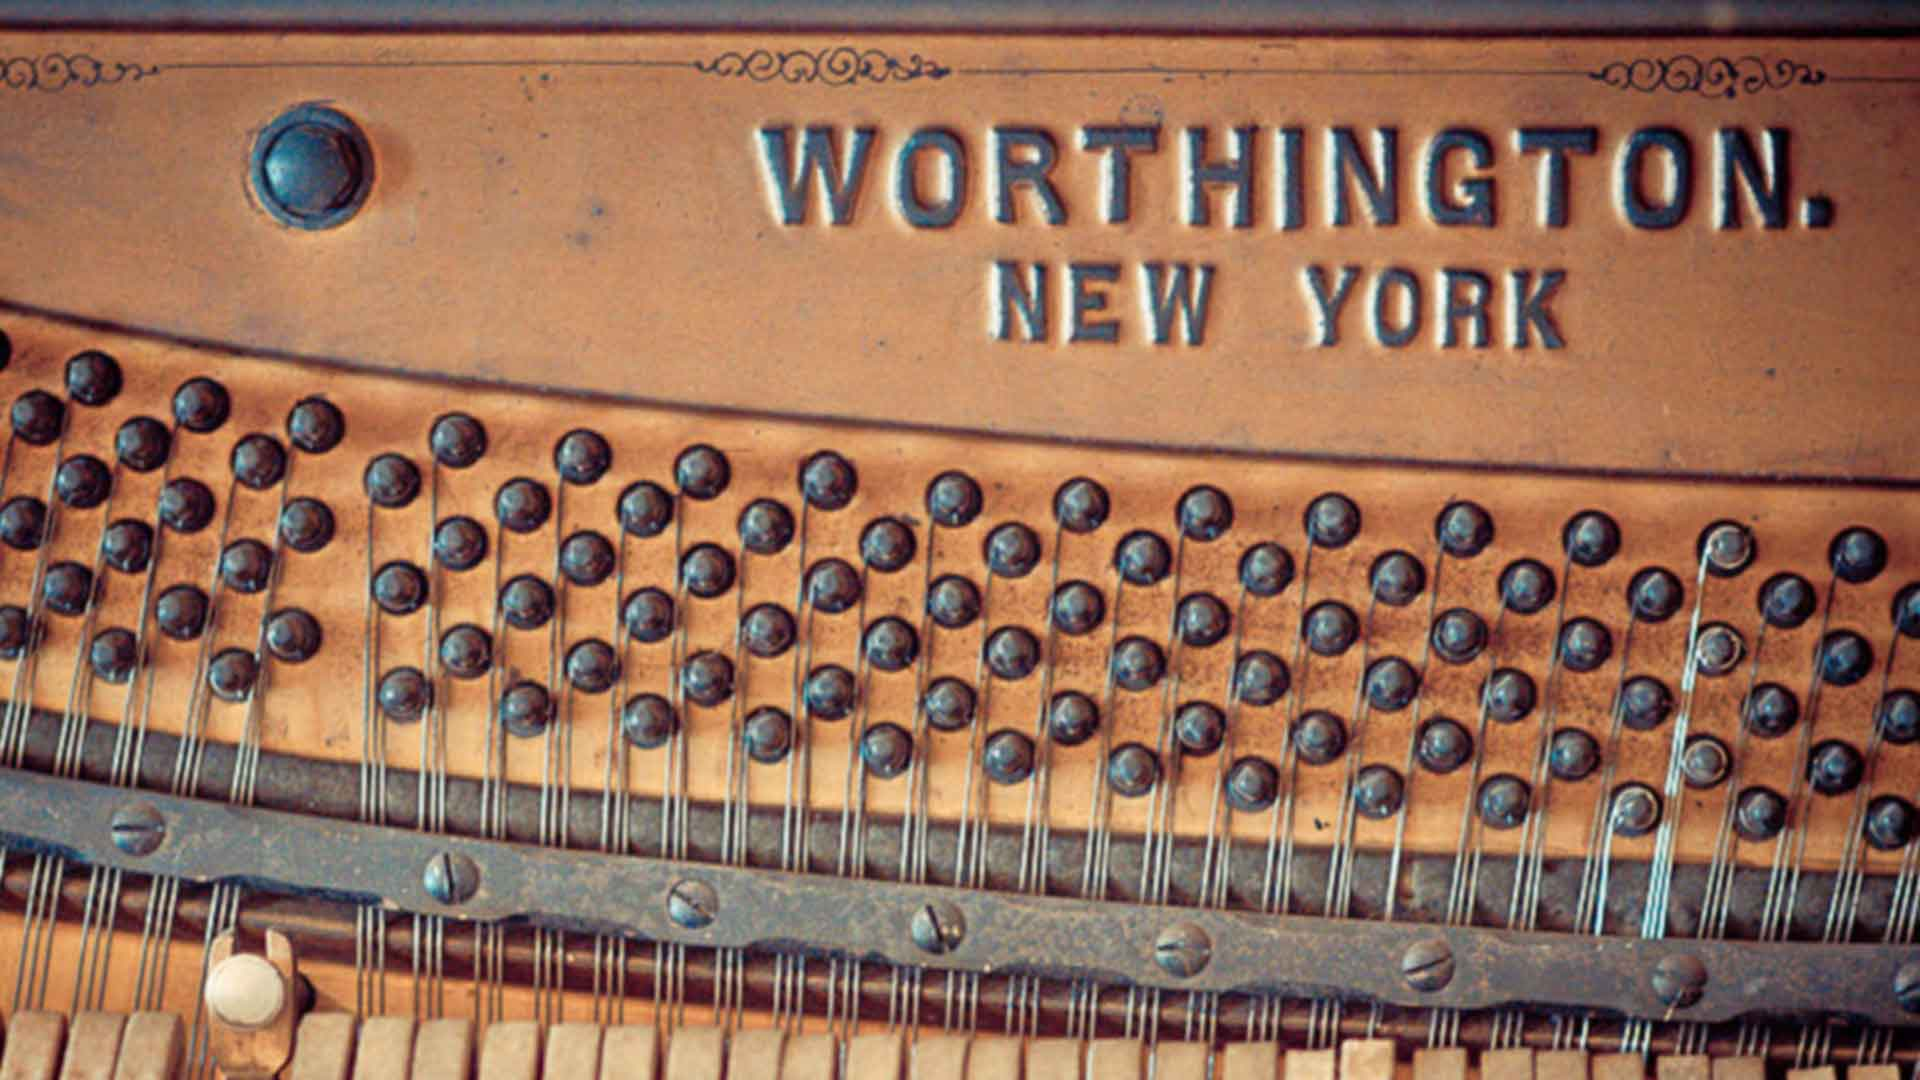 tuning pins and strings of a upright worthington new york piano background